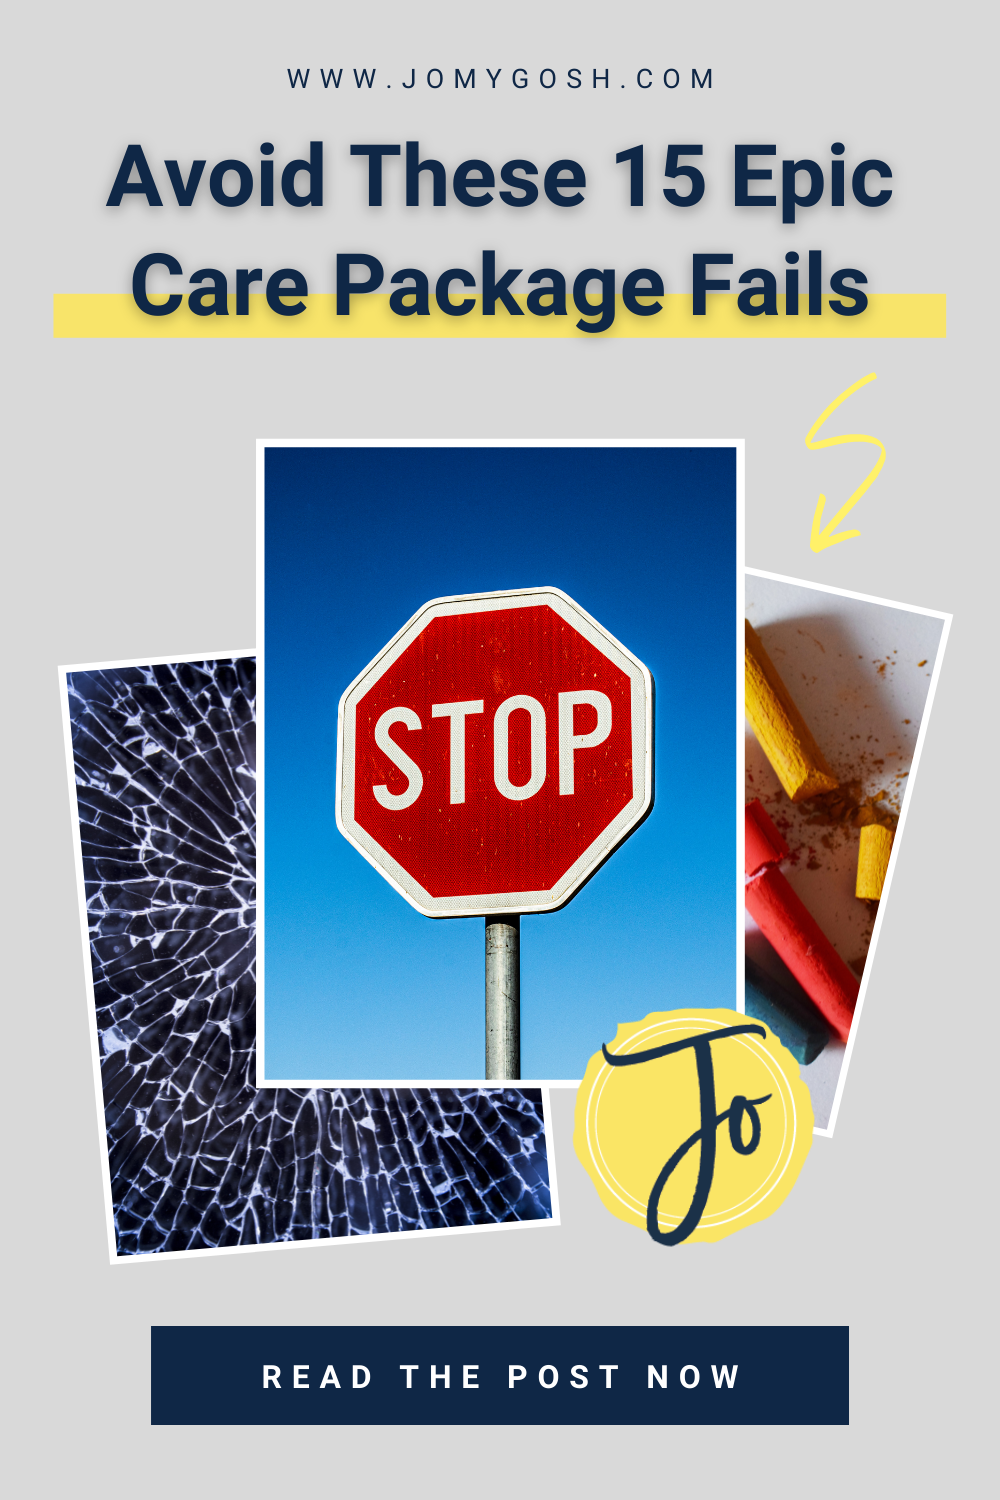 Make sure your care packages get where they're going safely and intact. Use these tips to avoid care package fails